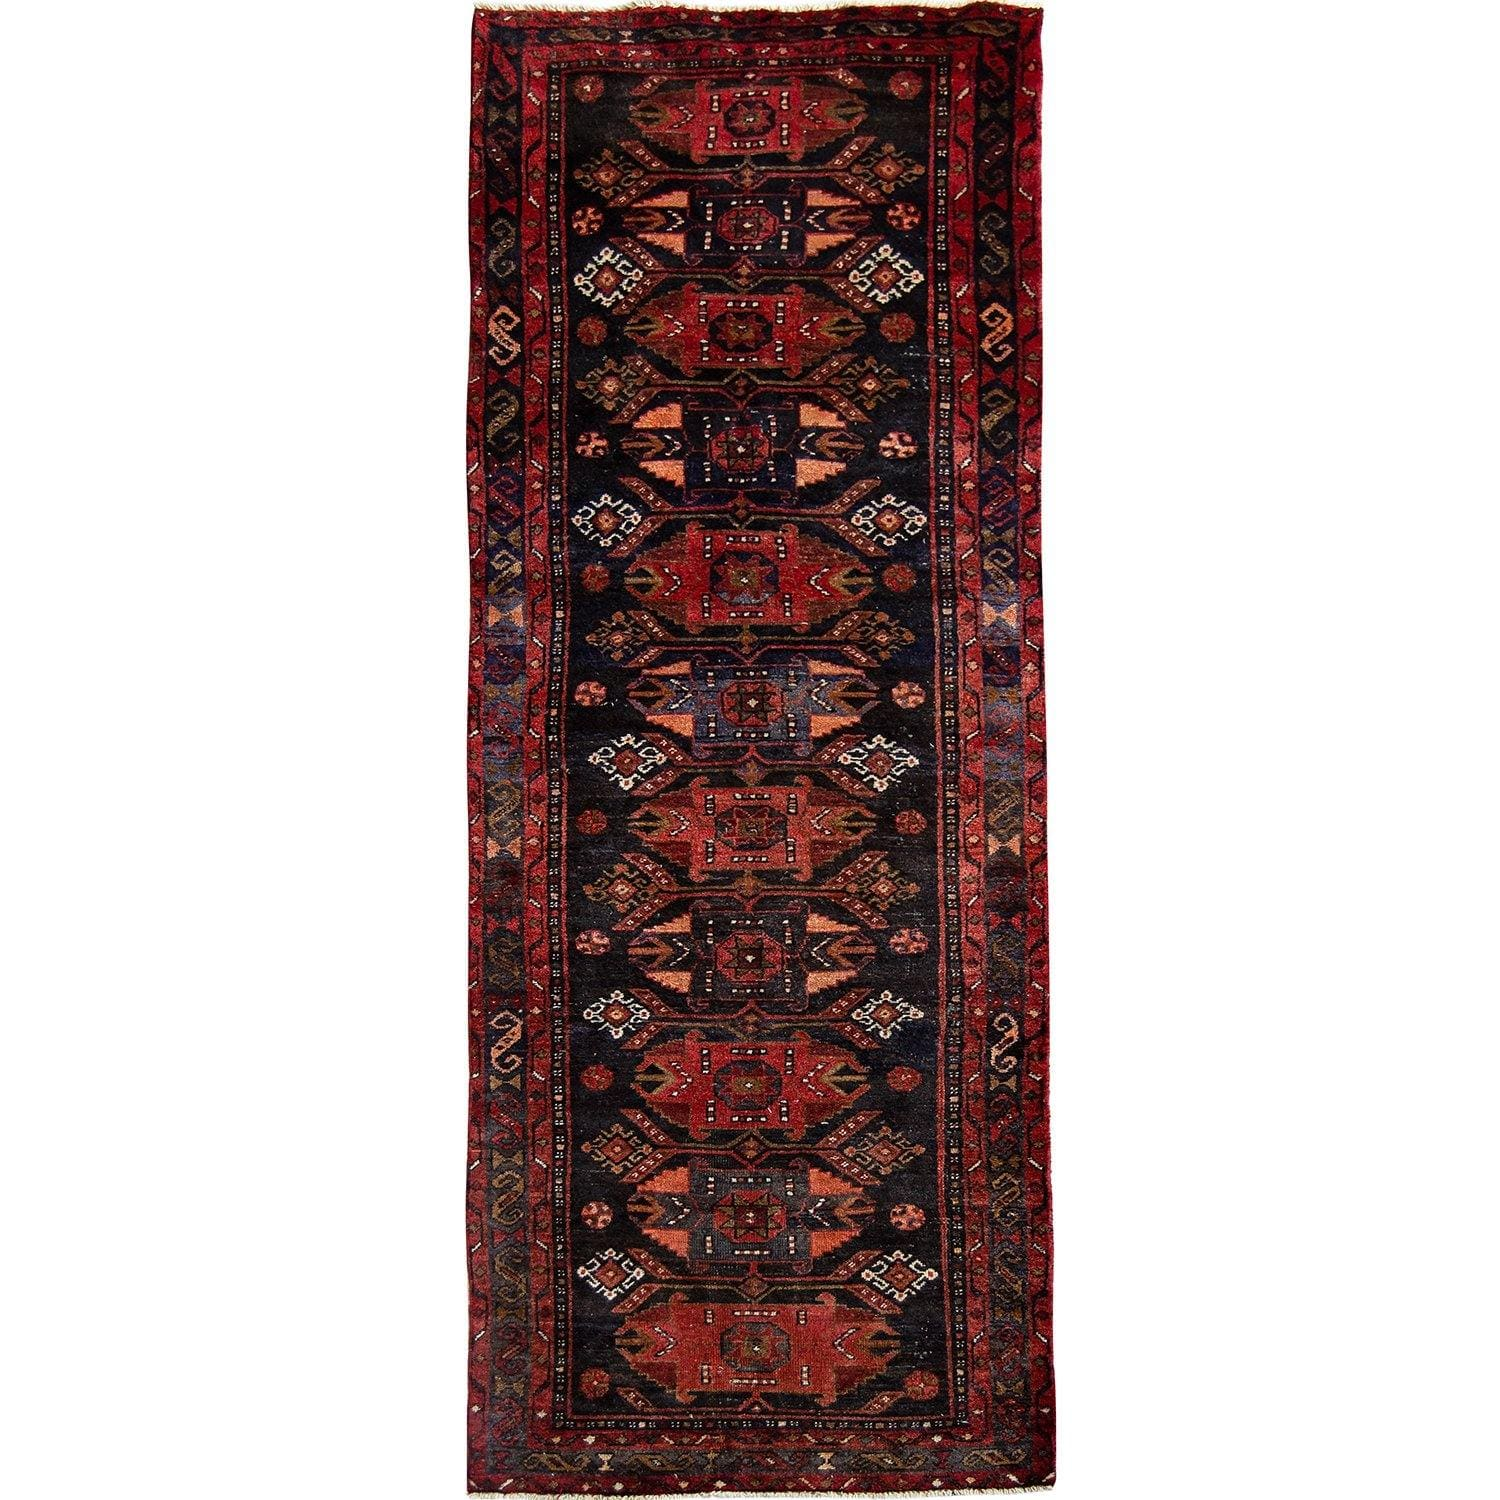 21493 Persian-Rug | House-of-Haghi | NewMarket | Auckland | NZ | Handmade Persian Rugs | Hand Knotted Persian Rugs